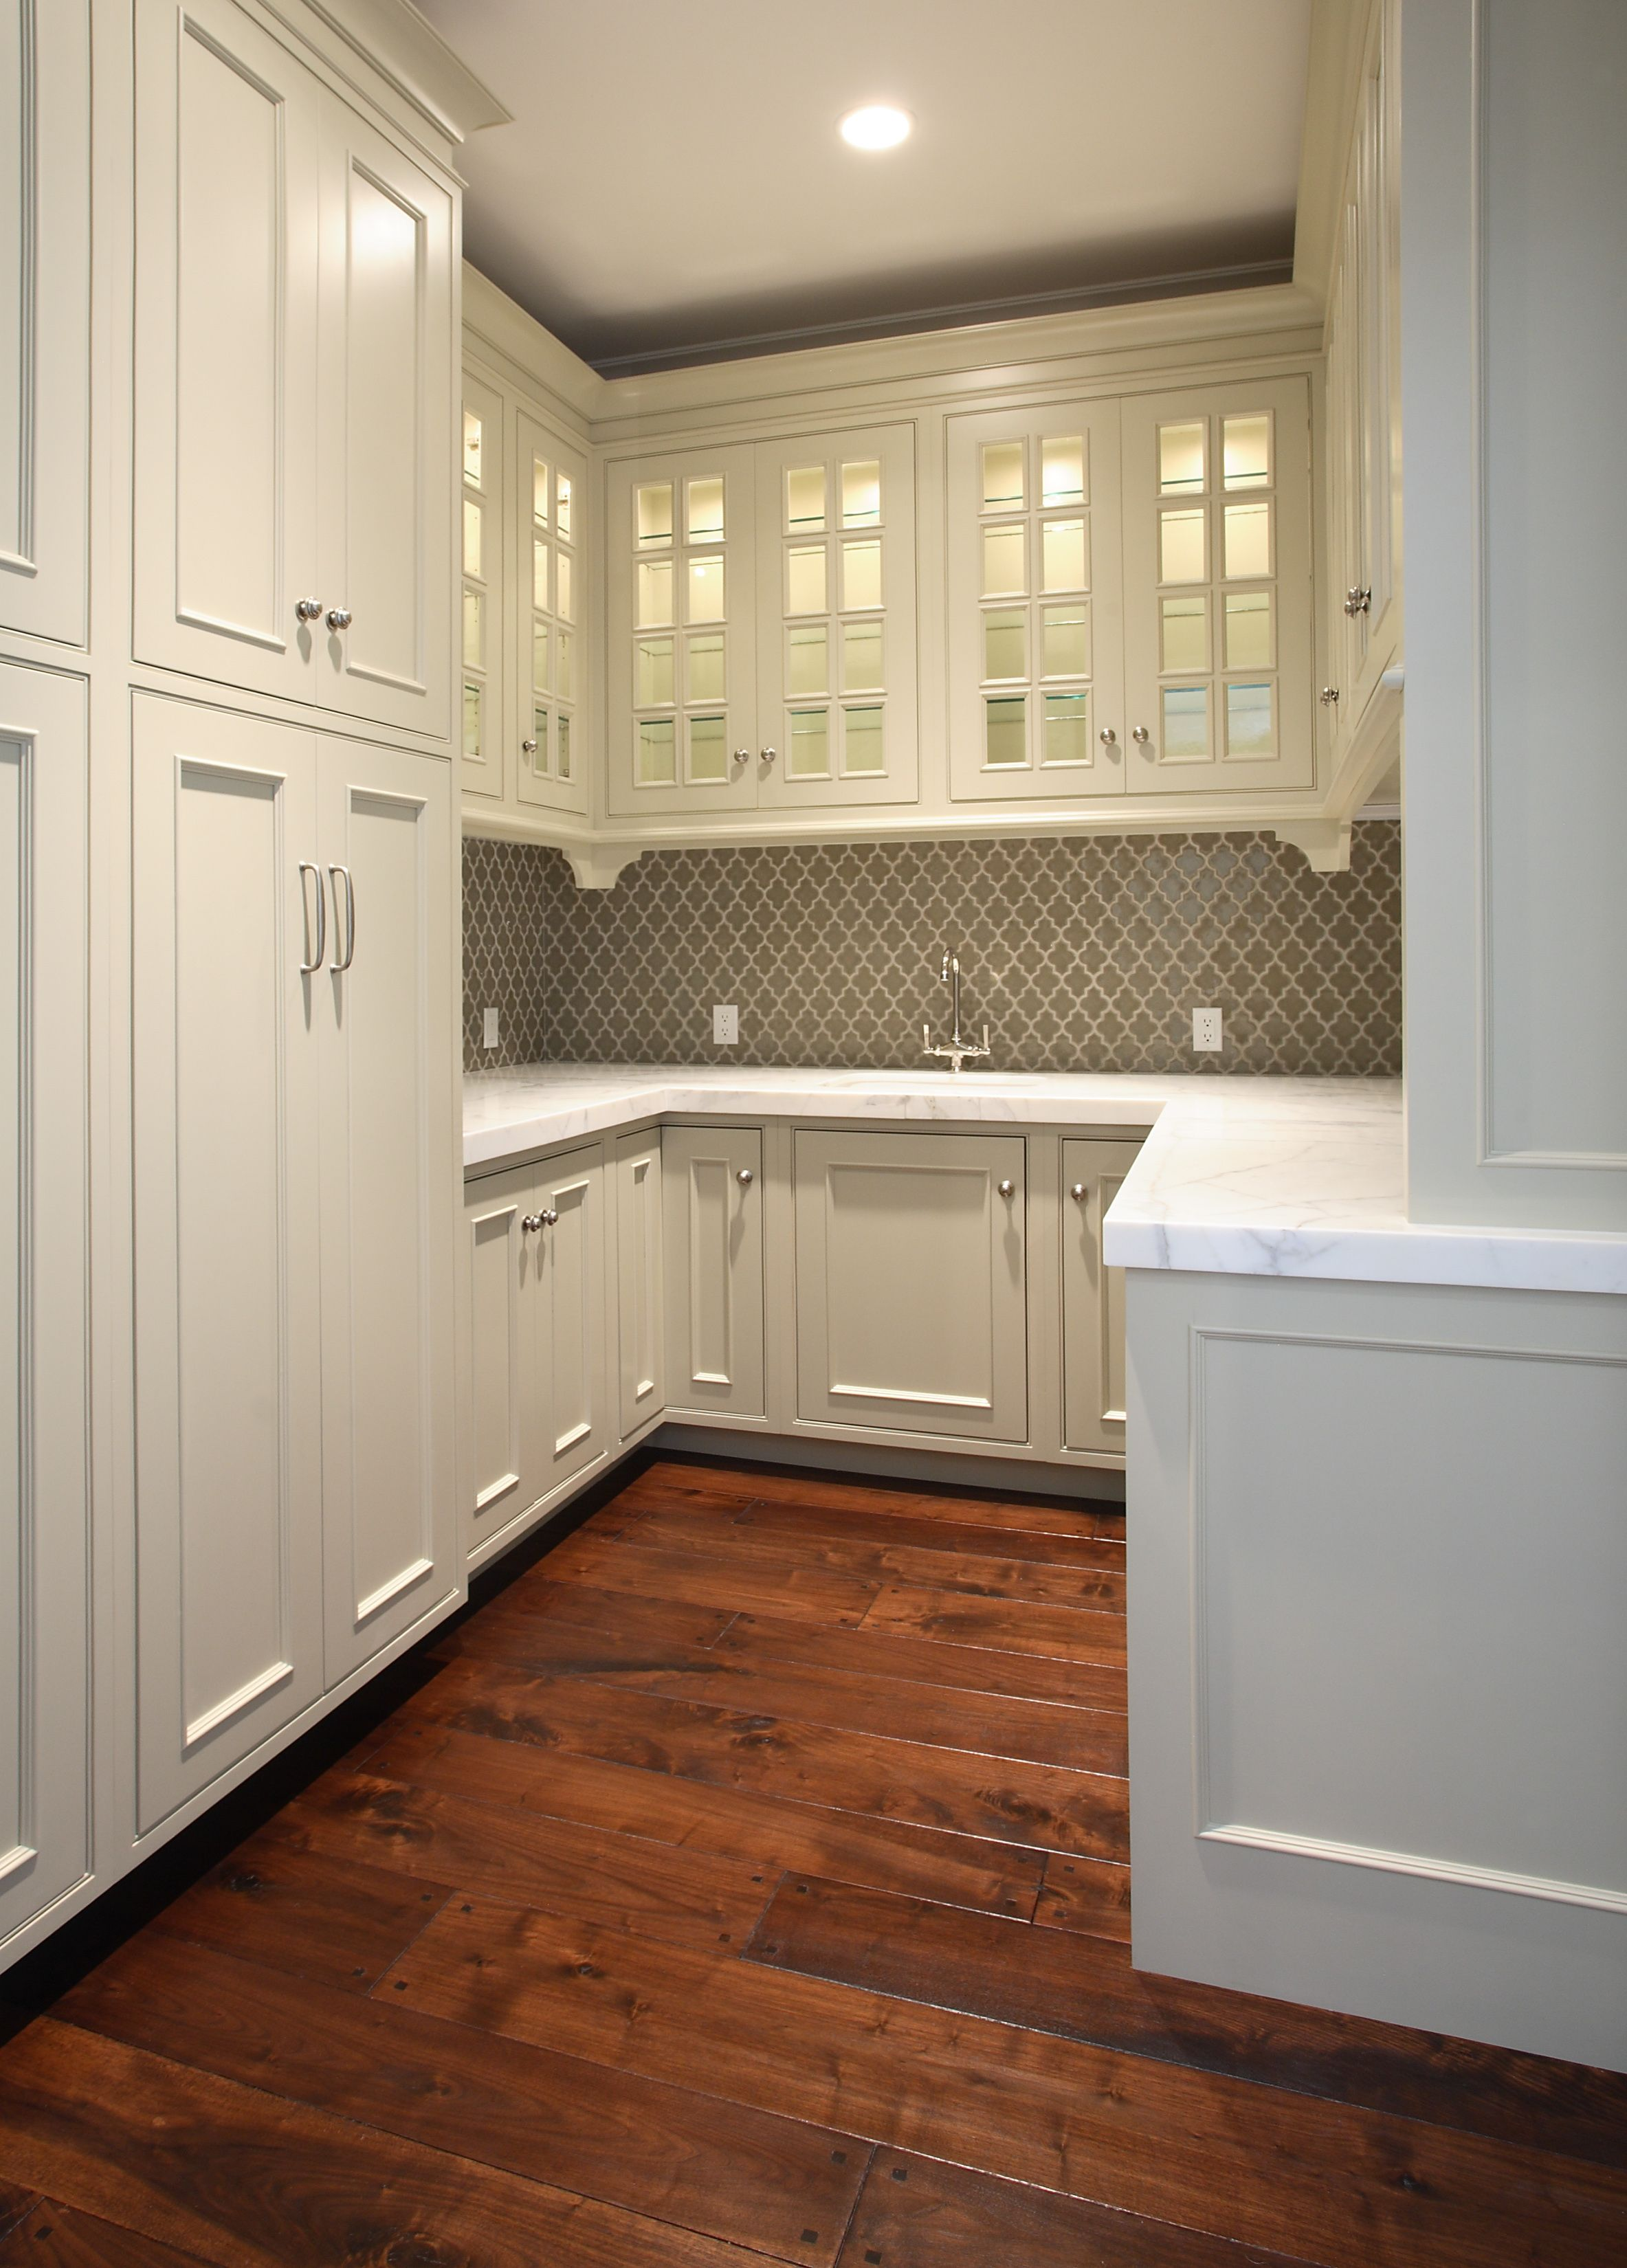 Butlers Pantry Magnolia Interior traditional